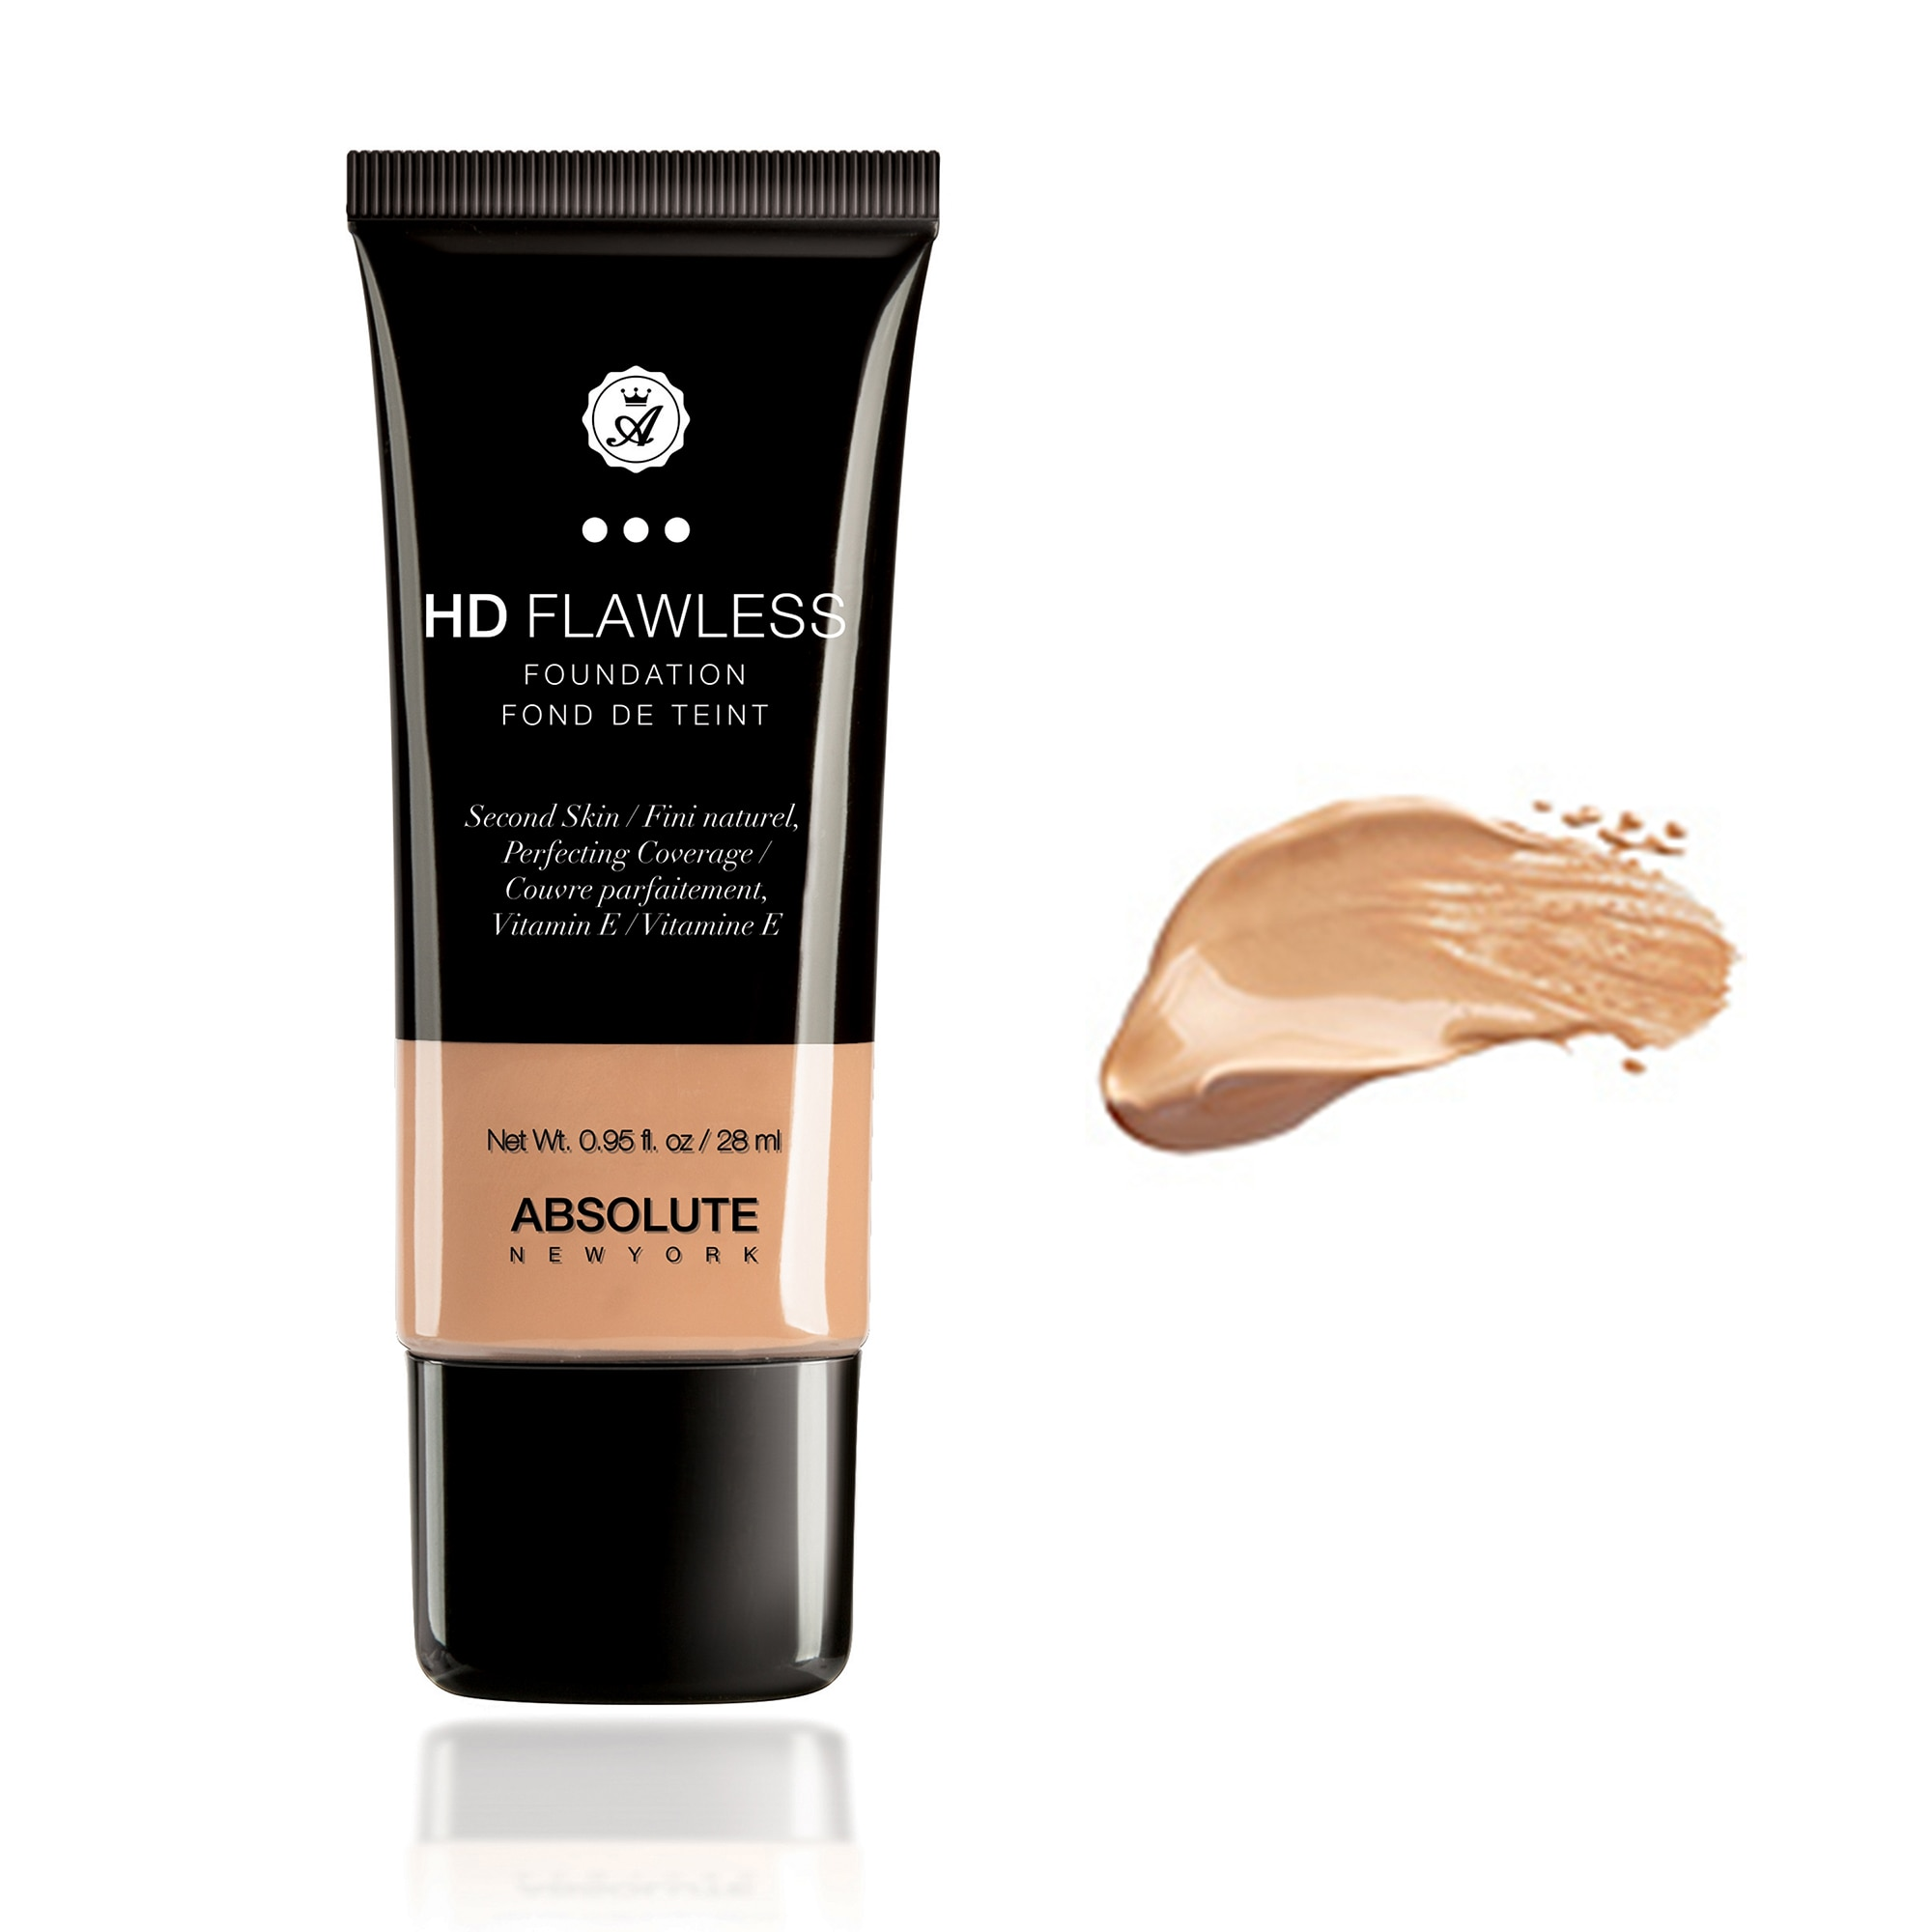 ABSOLUTE NEW YORKFlawless HD Foundation Sand 28g,FoundationWCFREEDELIVER